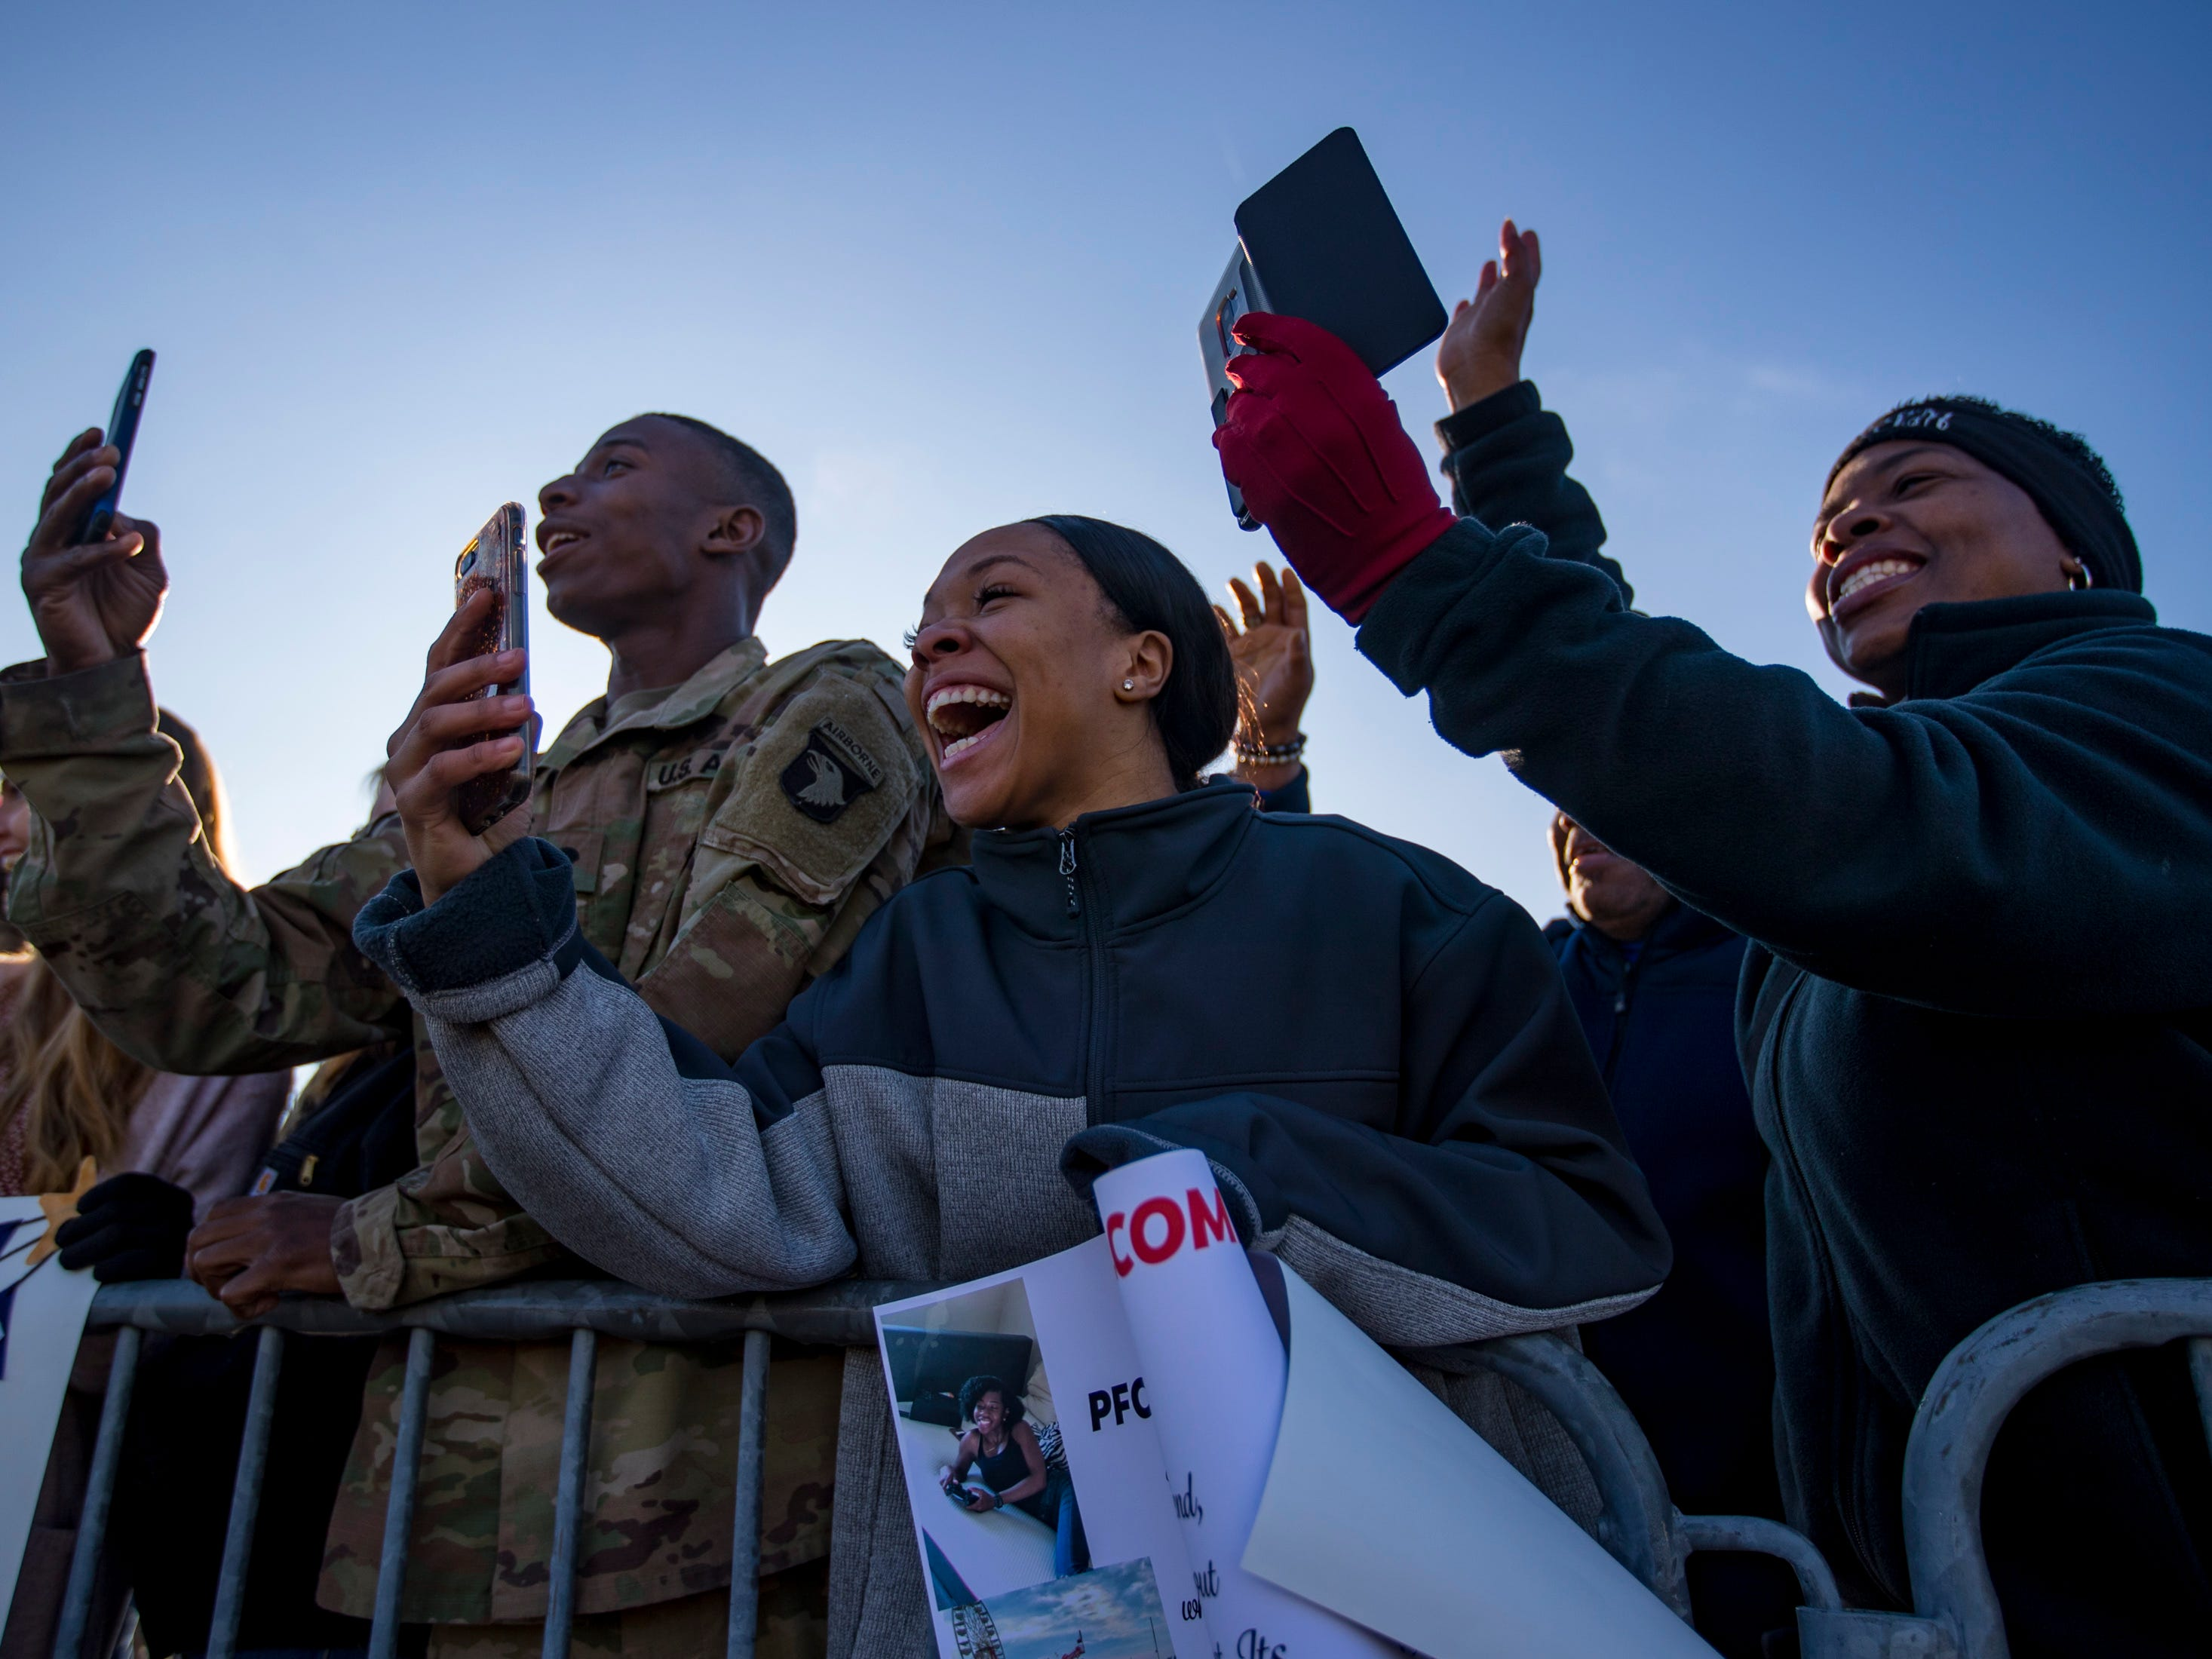 Tiara Patterson cheers as she sees her boyfriend Spc. Curtis Keaton during a homecoming ceremony for members of the 101st Combat Aviation Brigade and 101st Sustainment Brigade at Fort Campbell in Clarksville on Thursday, Feb. 21, 2019. The soldiers were returning from a nine-month deployment to Afghanistan.